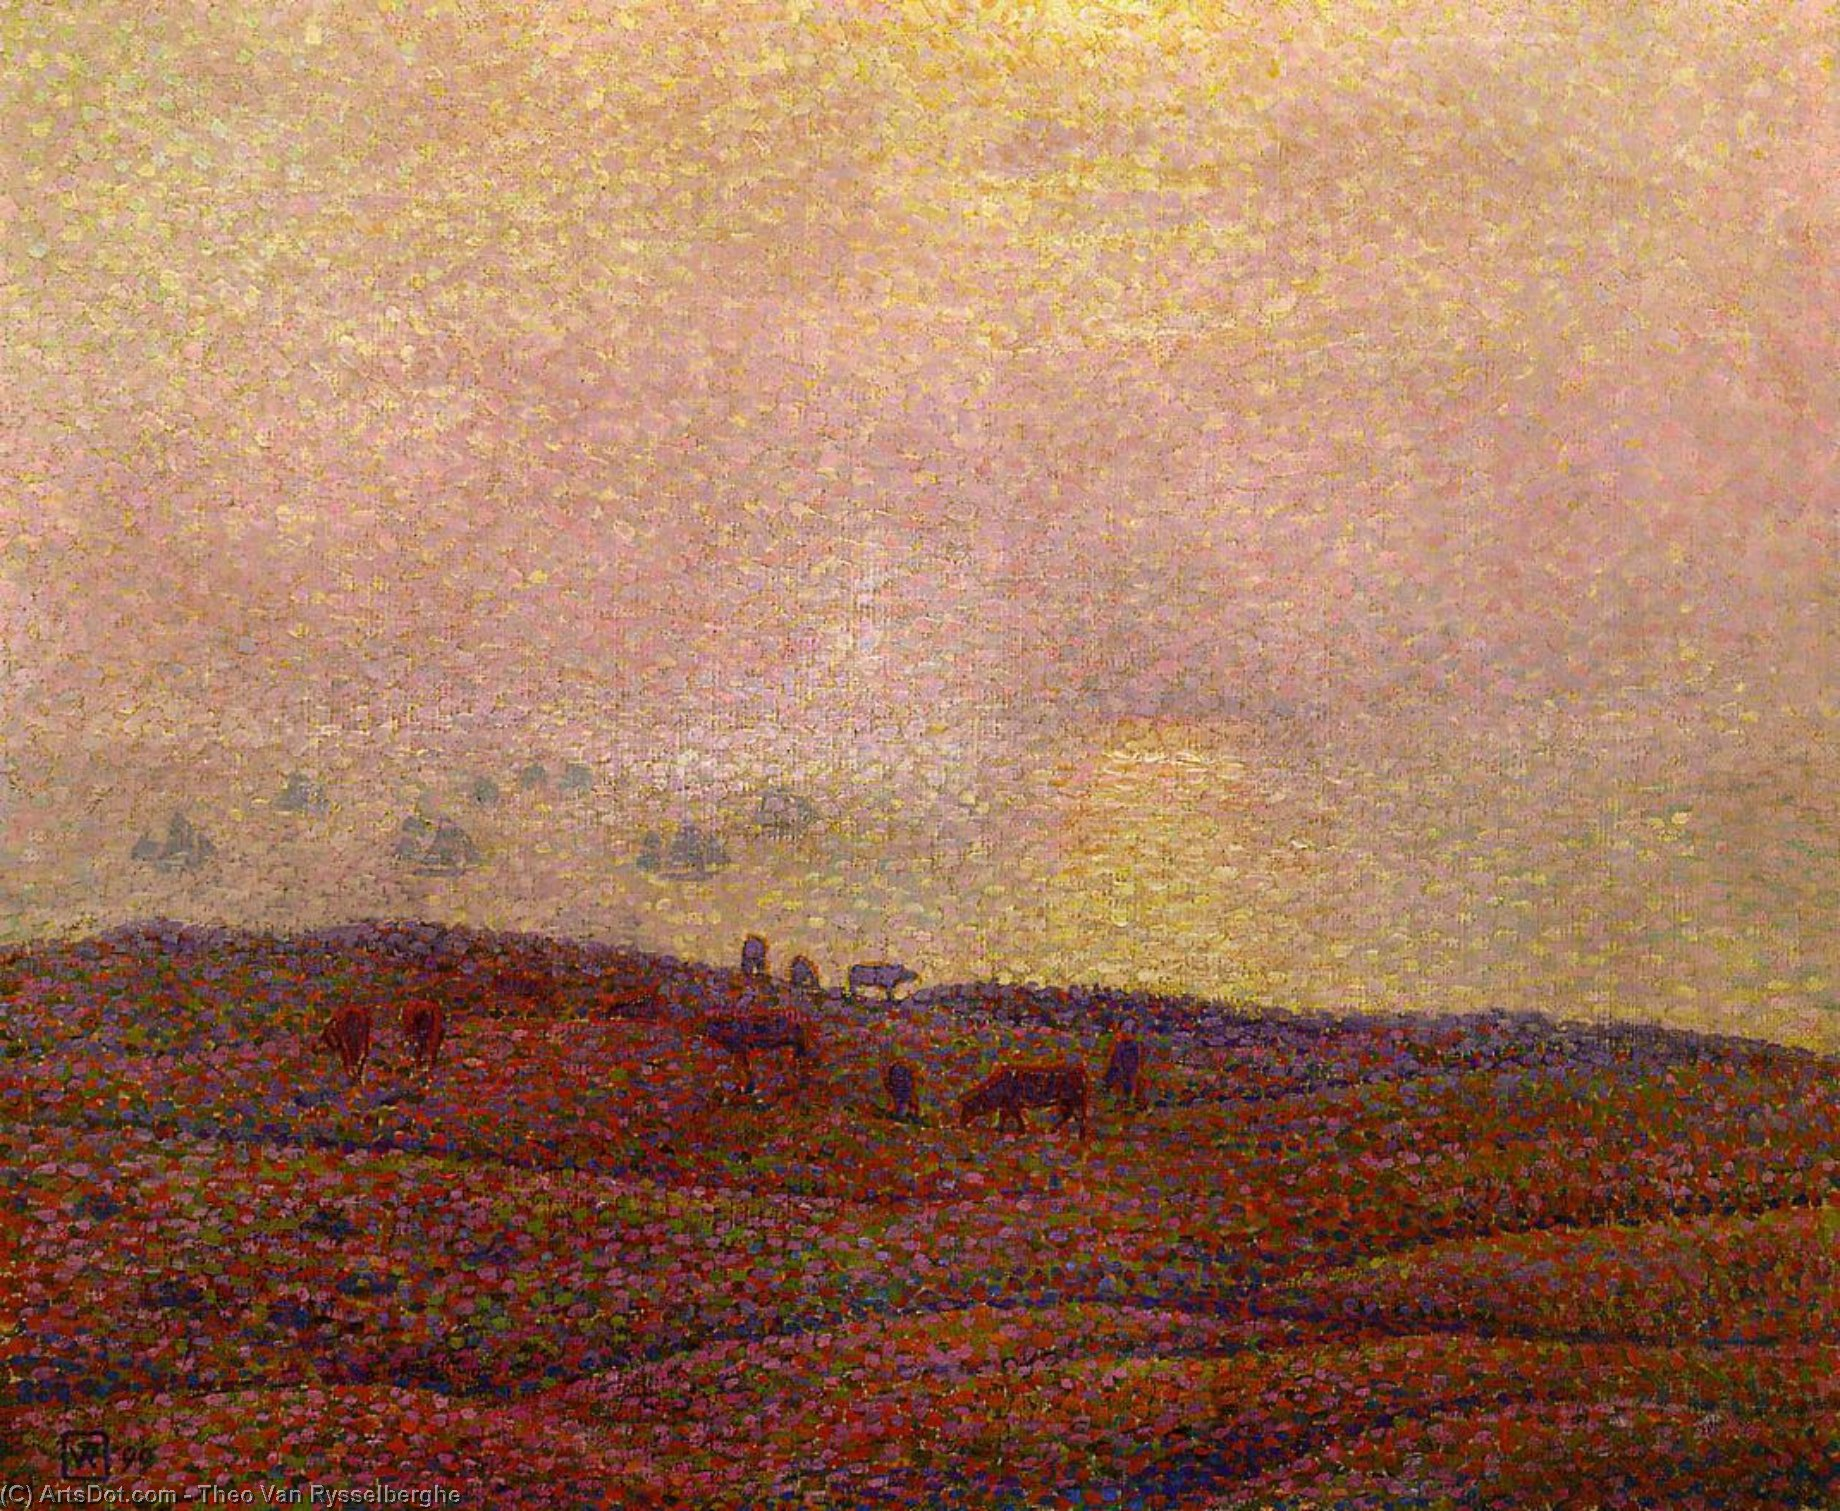 Cows in a Landscape, Oil On Canvas by Theo Van Rysselberghe (1862-1926, Belgium)